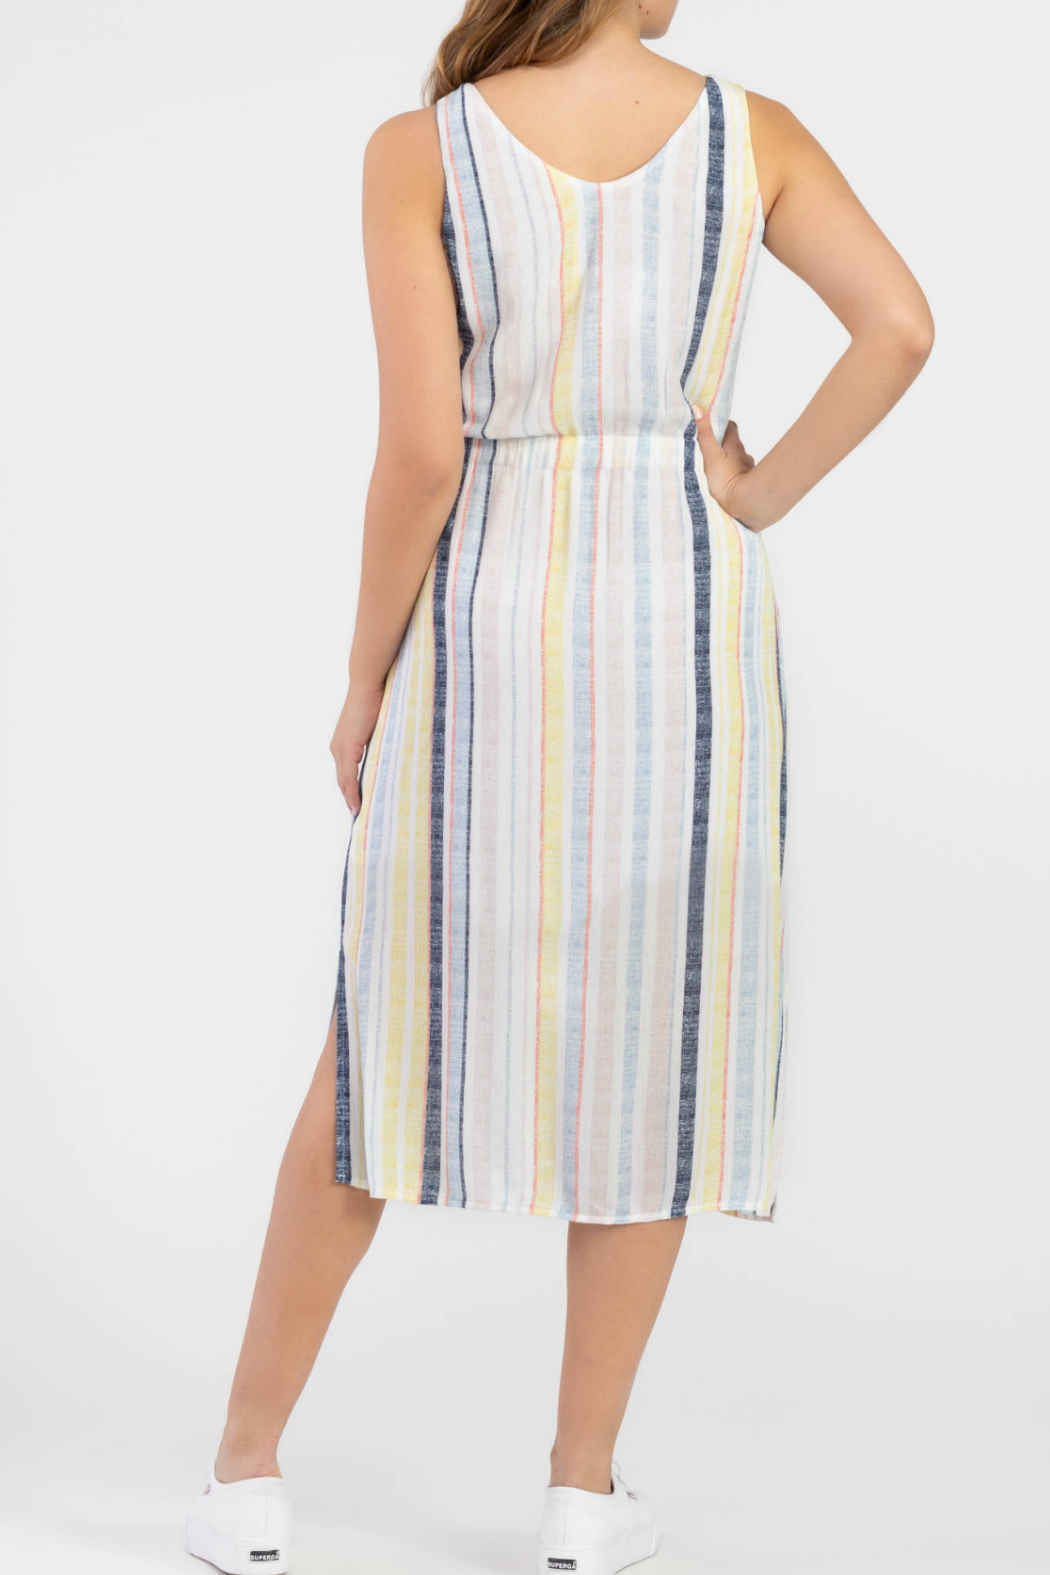 Tribal Striped dress with a tie front - Front Full Image